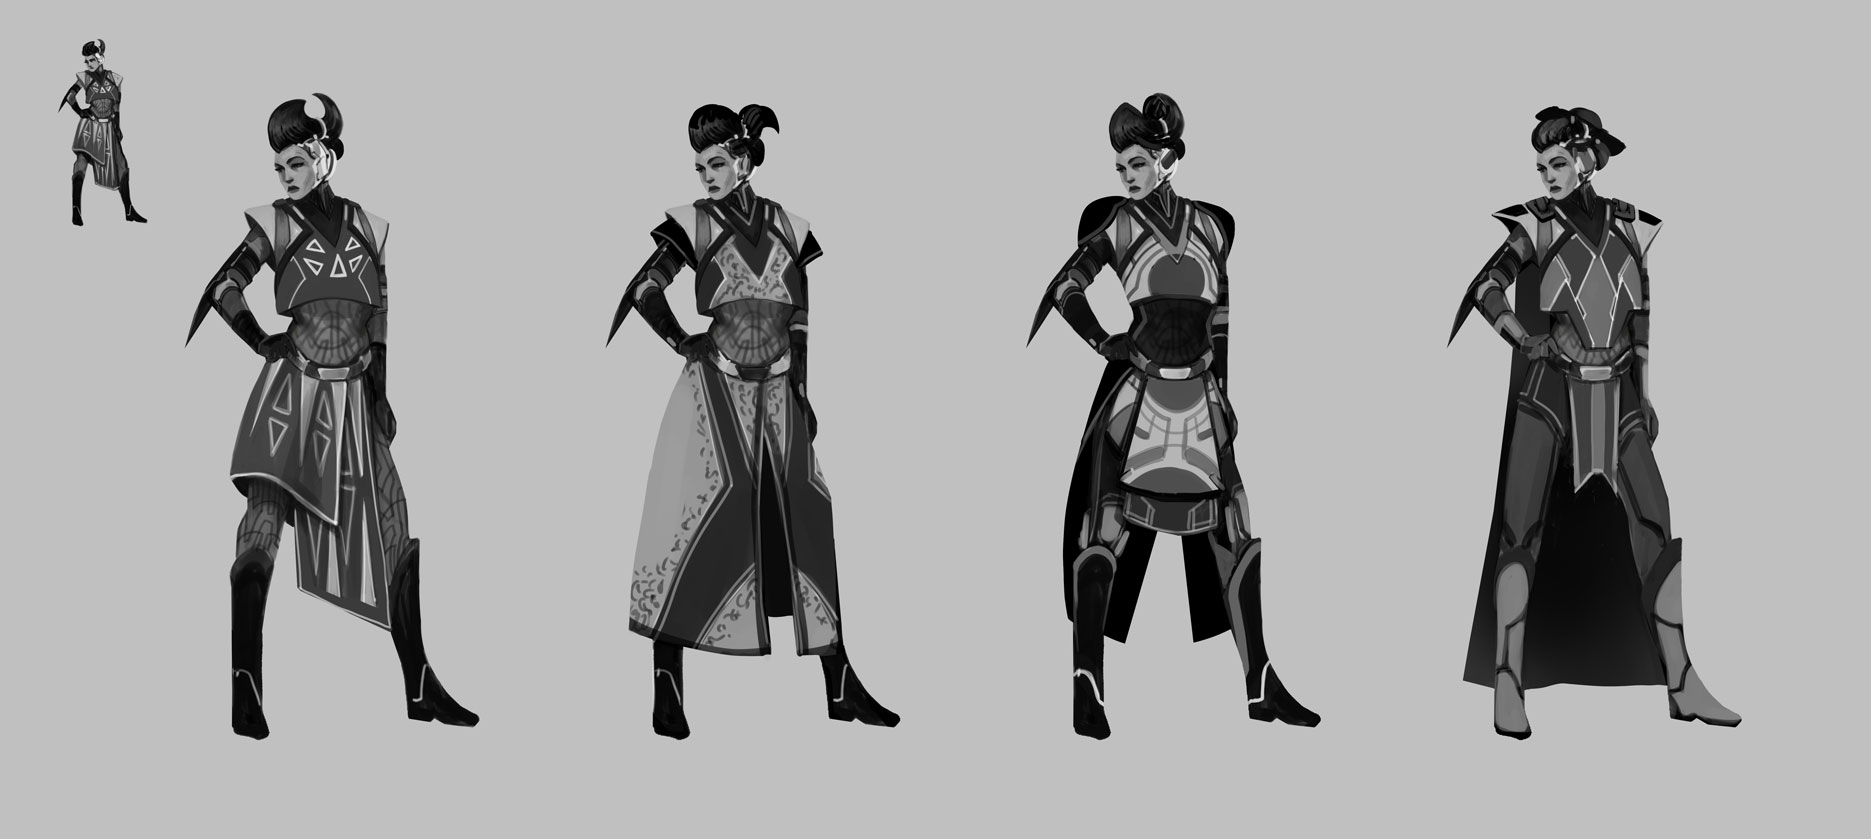 j_strohl_Character4_Iterations